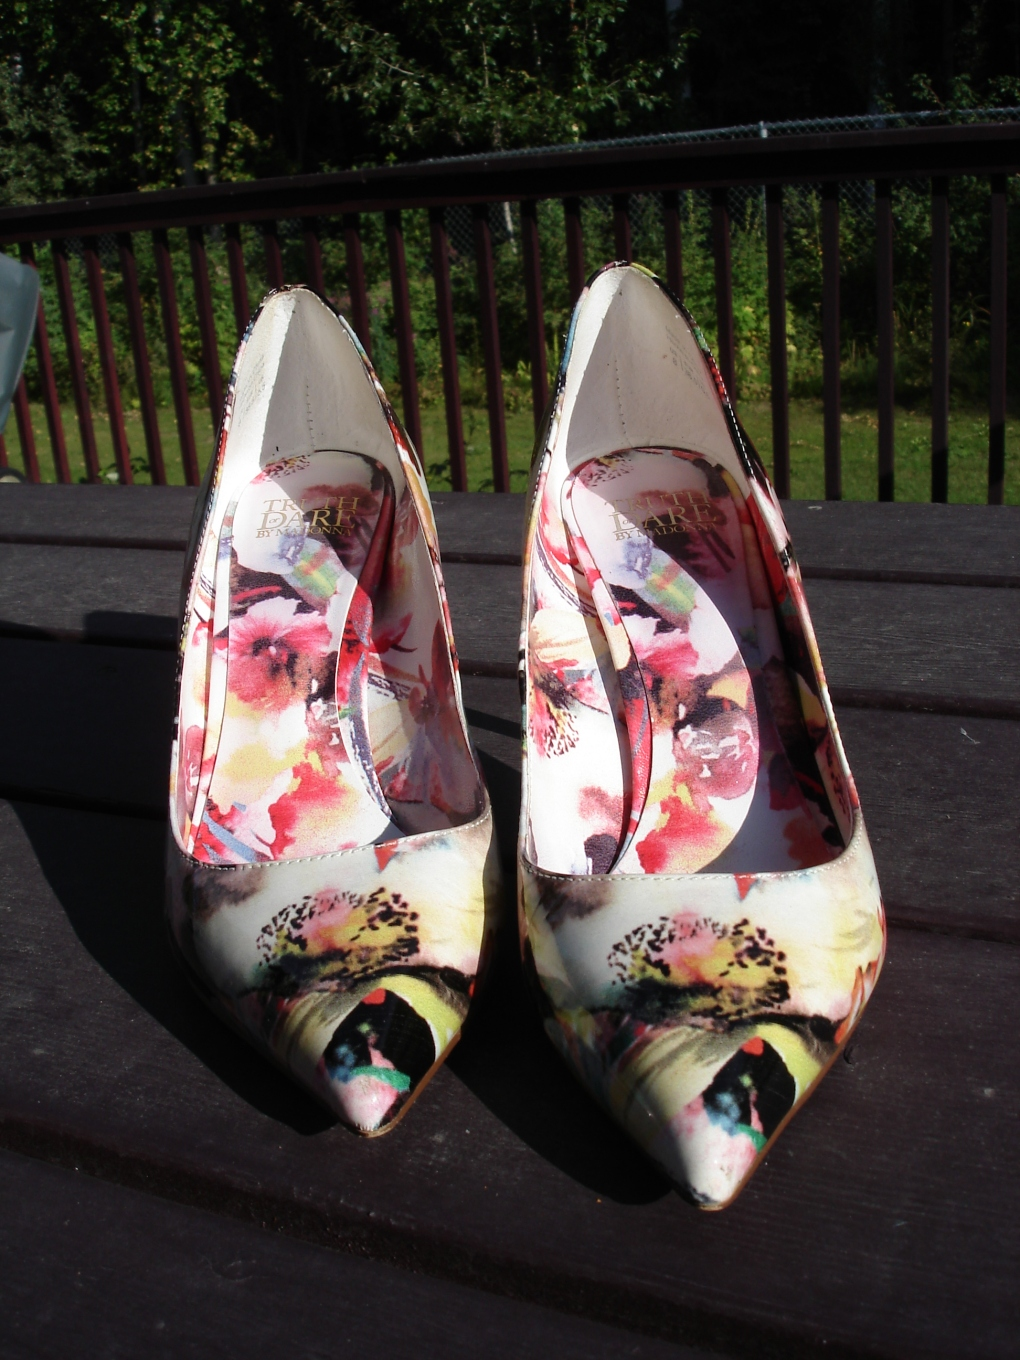 #maturestyle Floral pumps 101 reasons to wear heels over 40 @ http://wp.me/p3FTnC-41K